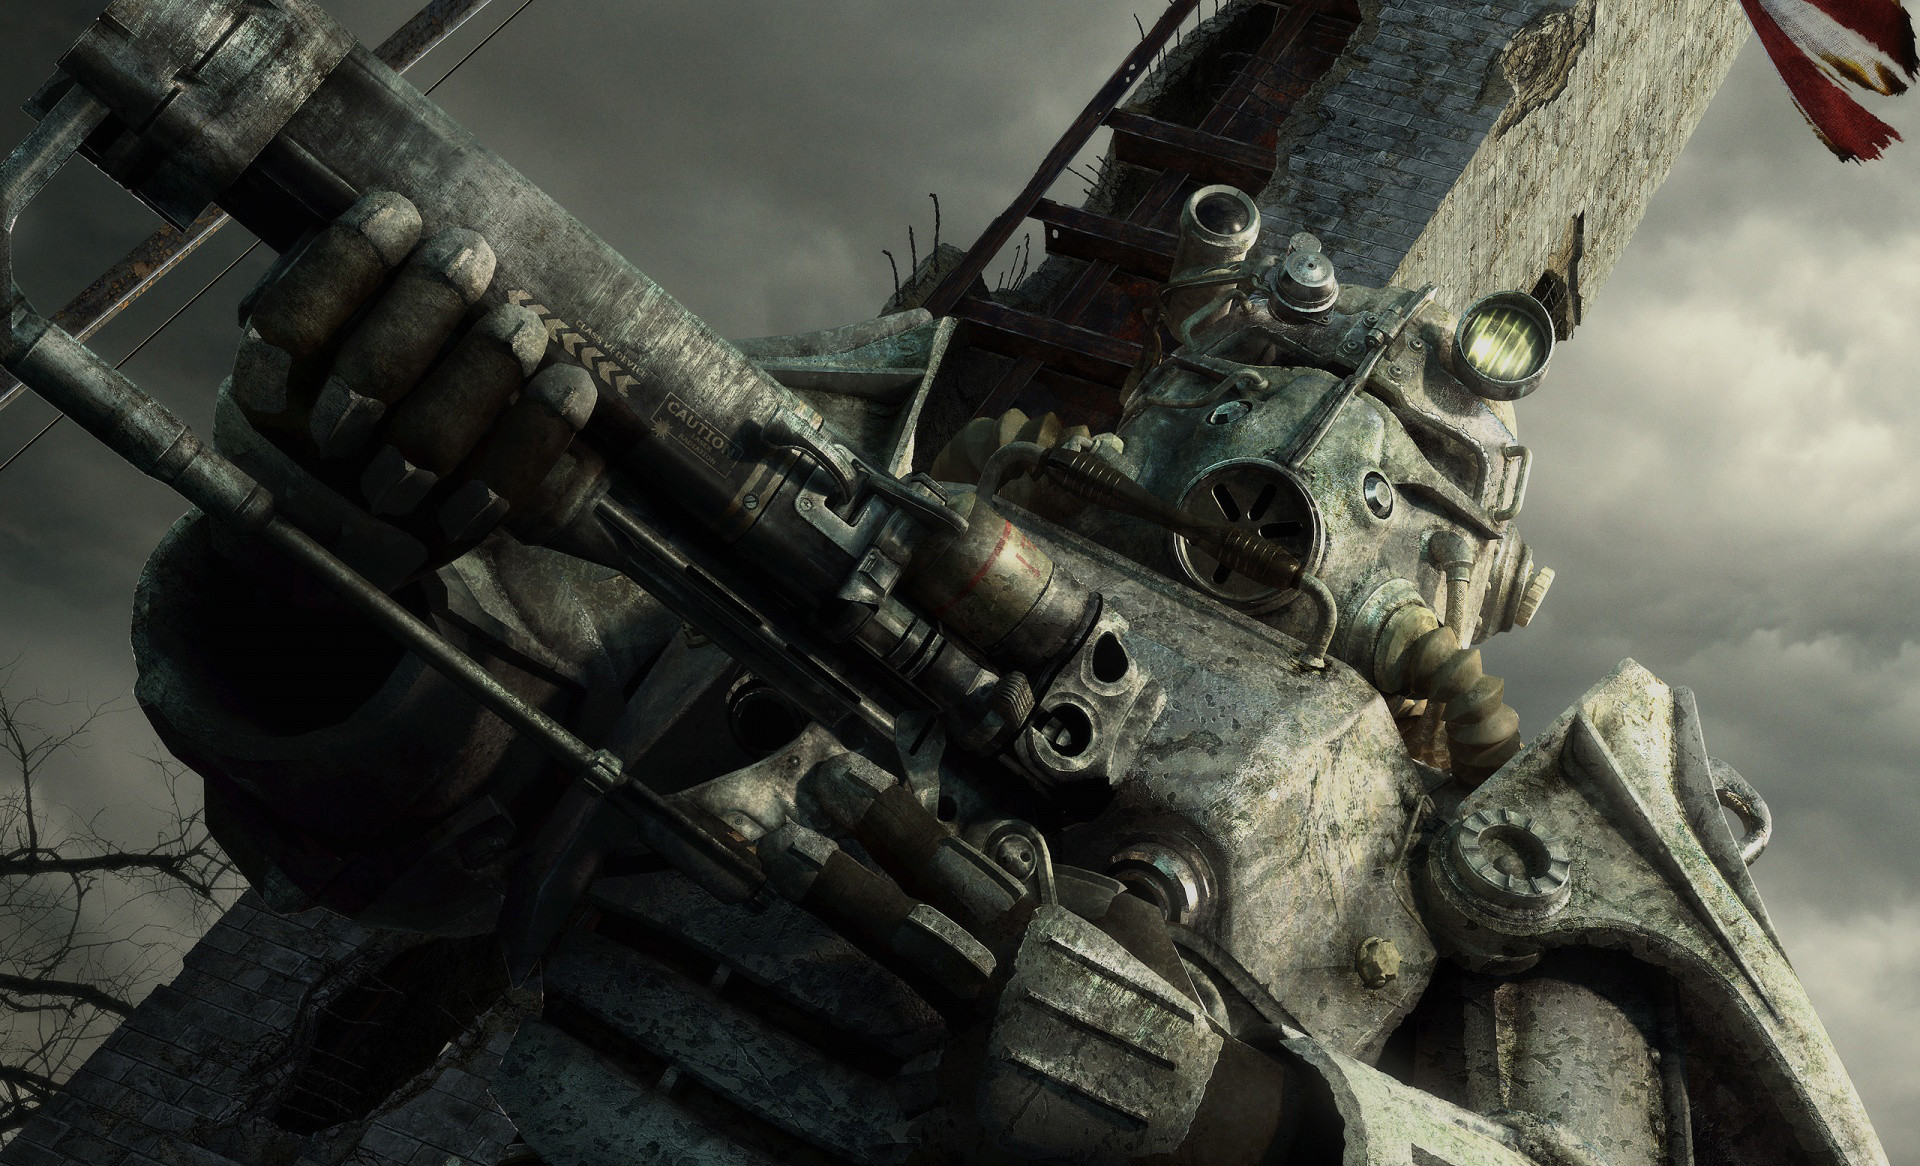 1920x1166 wallpaper.wiki-Fallout-3-Pictures-Download-PIC-WPE008791